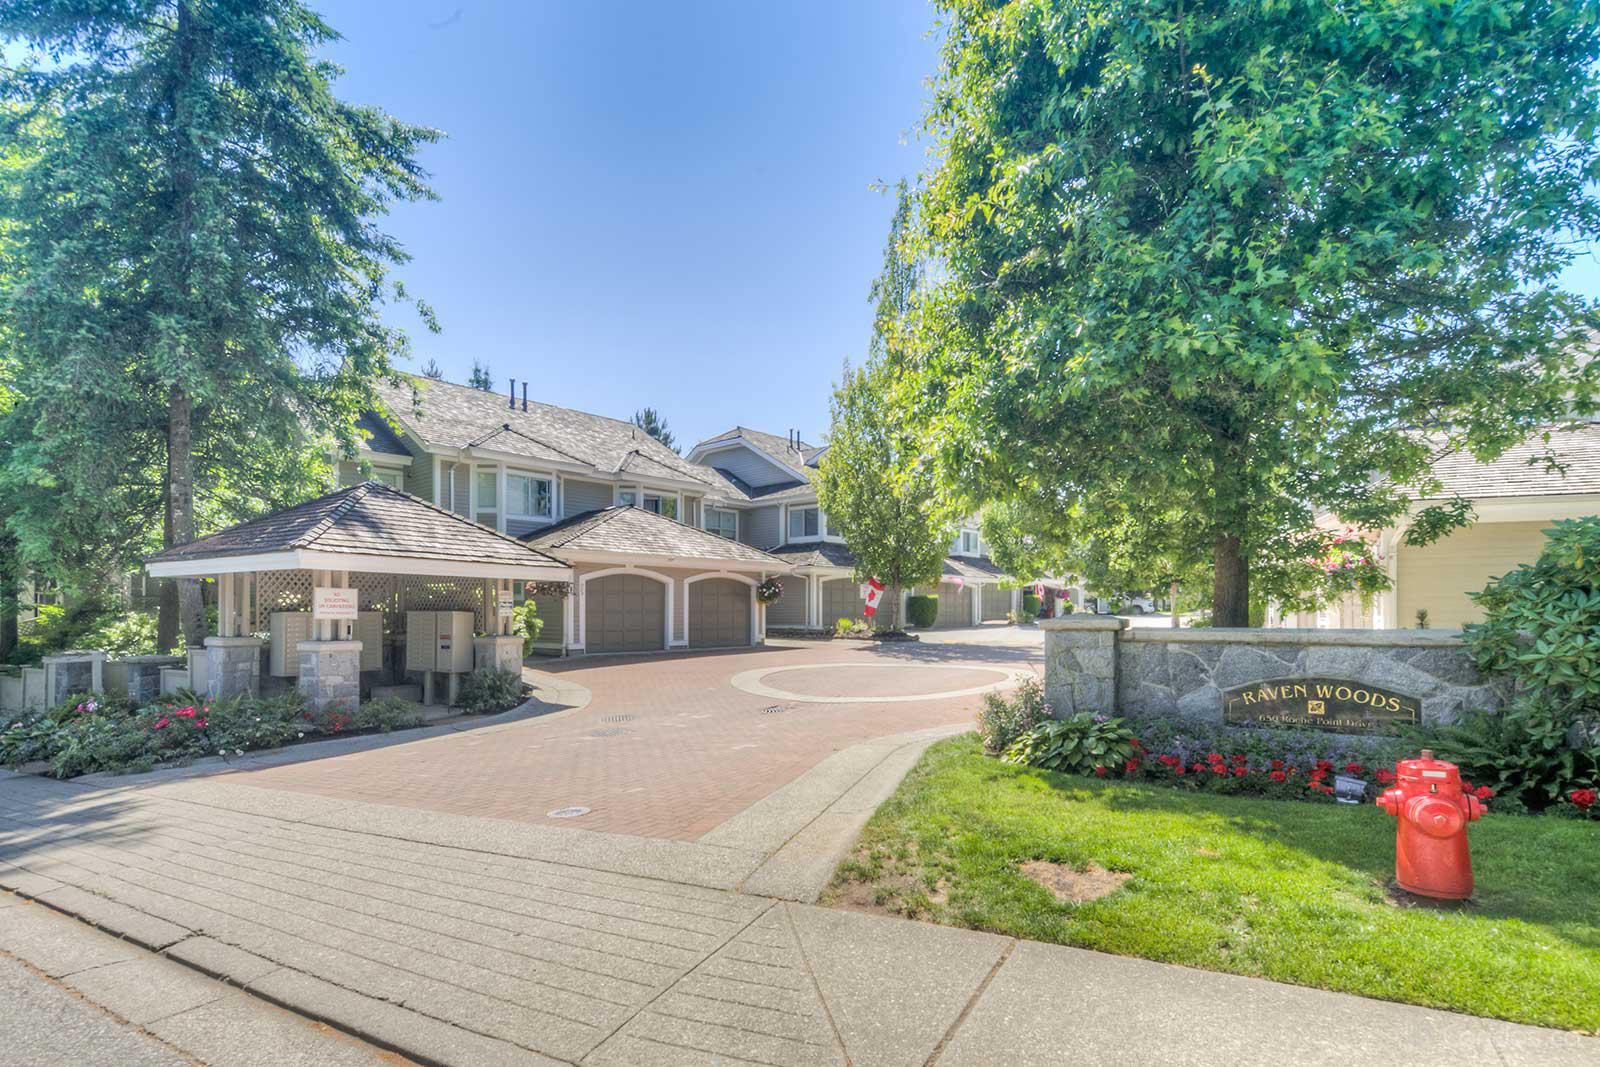 Raven Woods at 650 Roche Point Dr, North Vancouver District 0